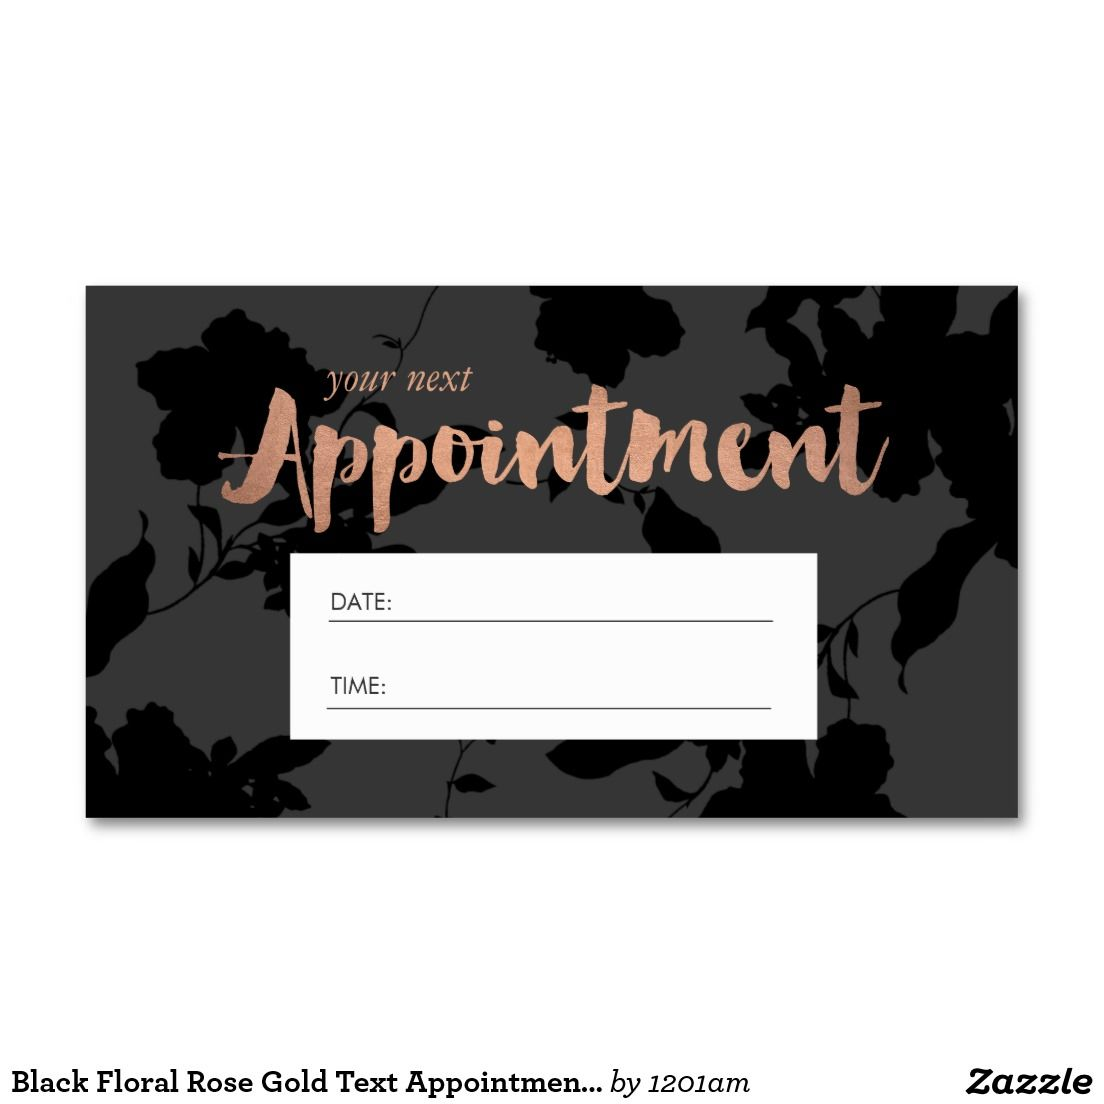 Black Floral Rose Gold Text Appointment Cards for Hair Salons ...